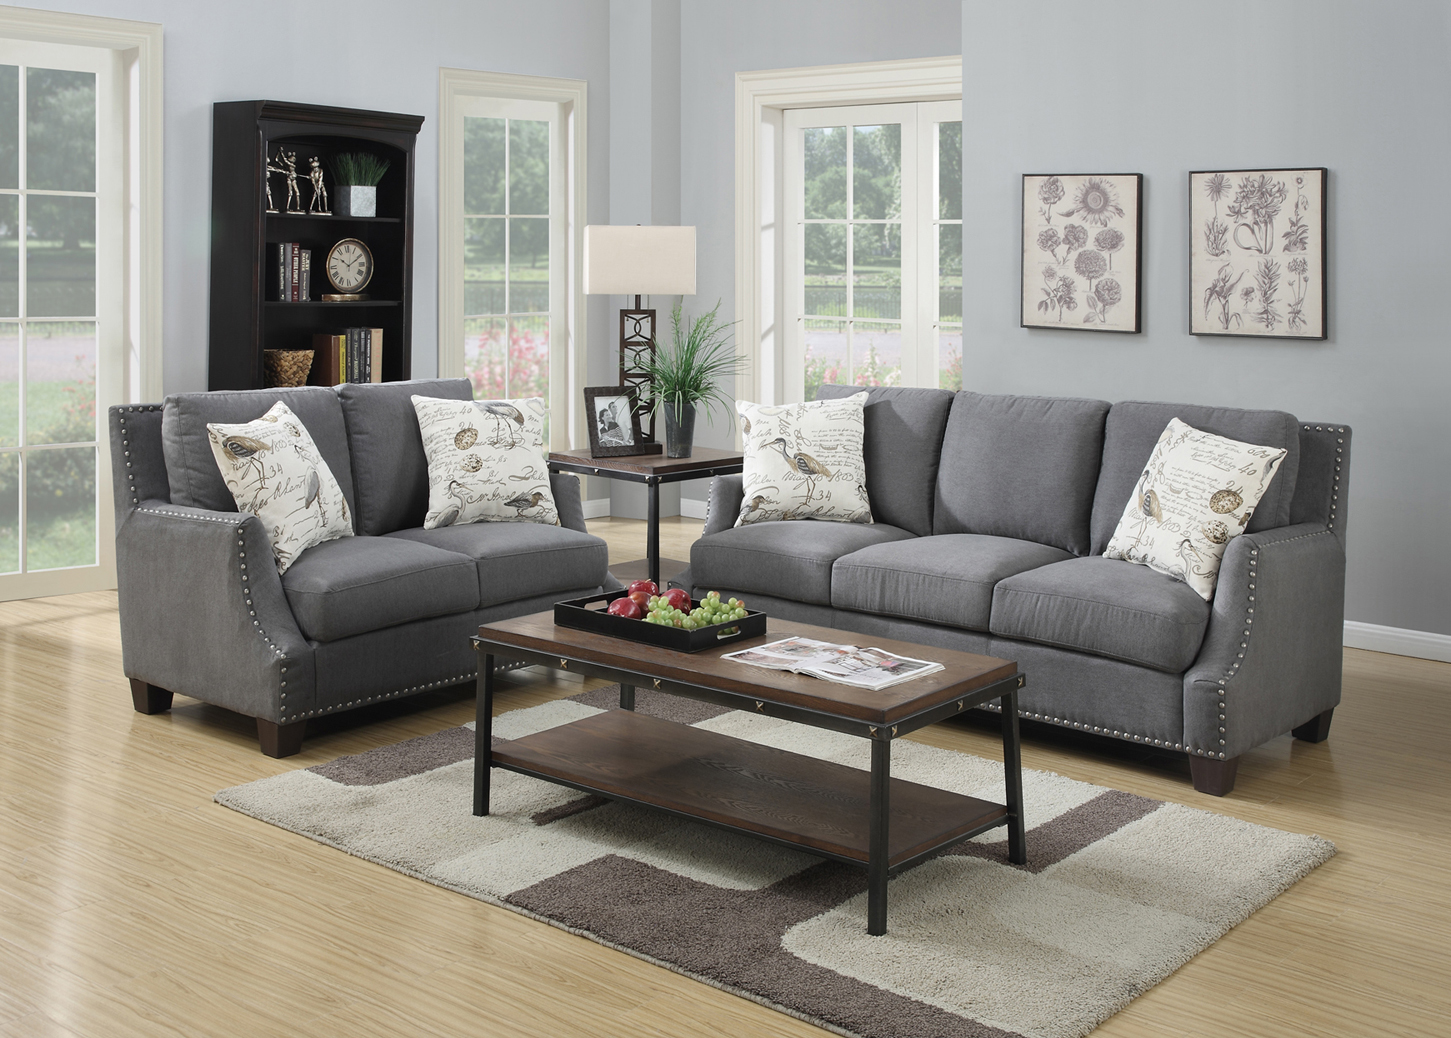 August Fabric Sofa Set